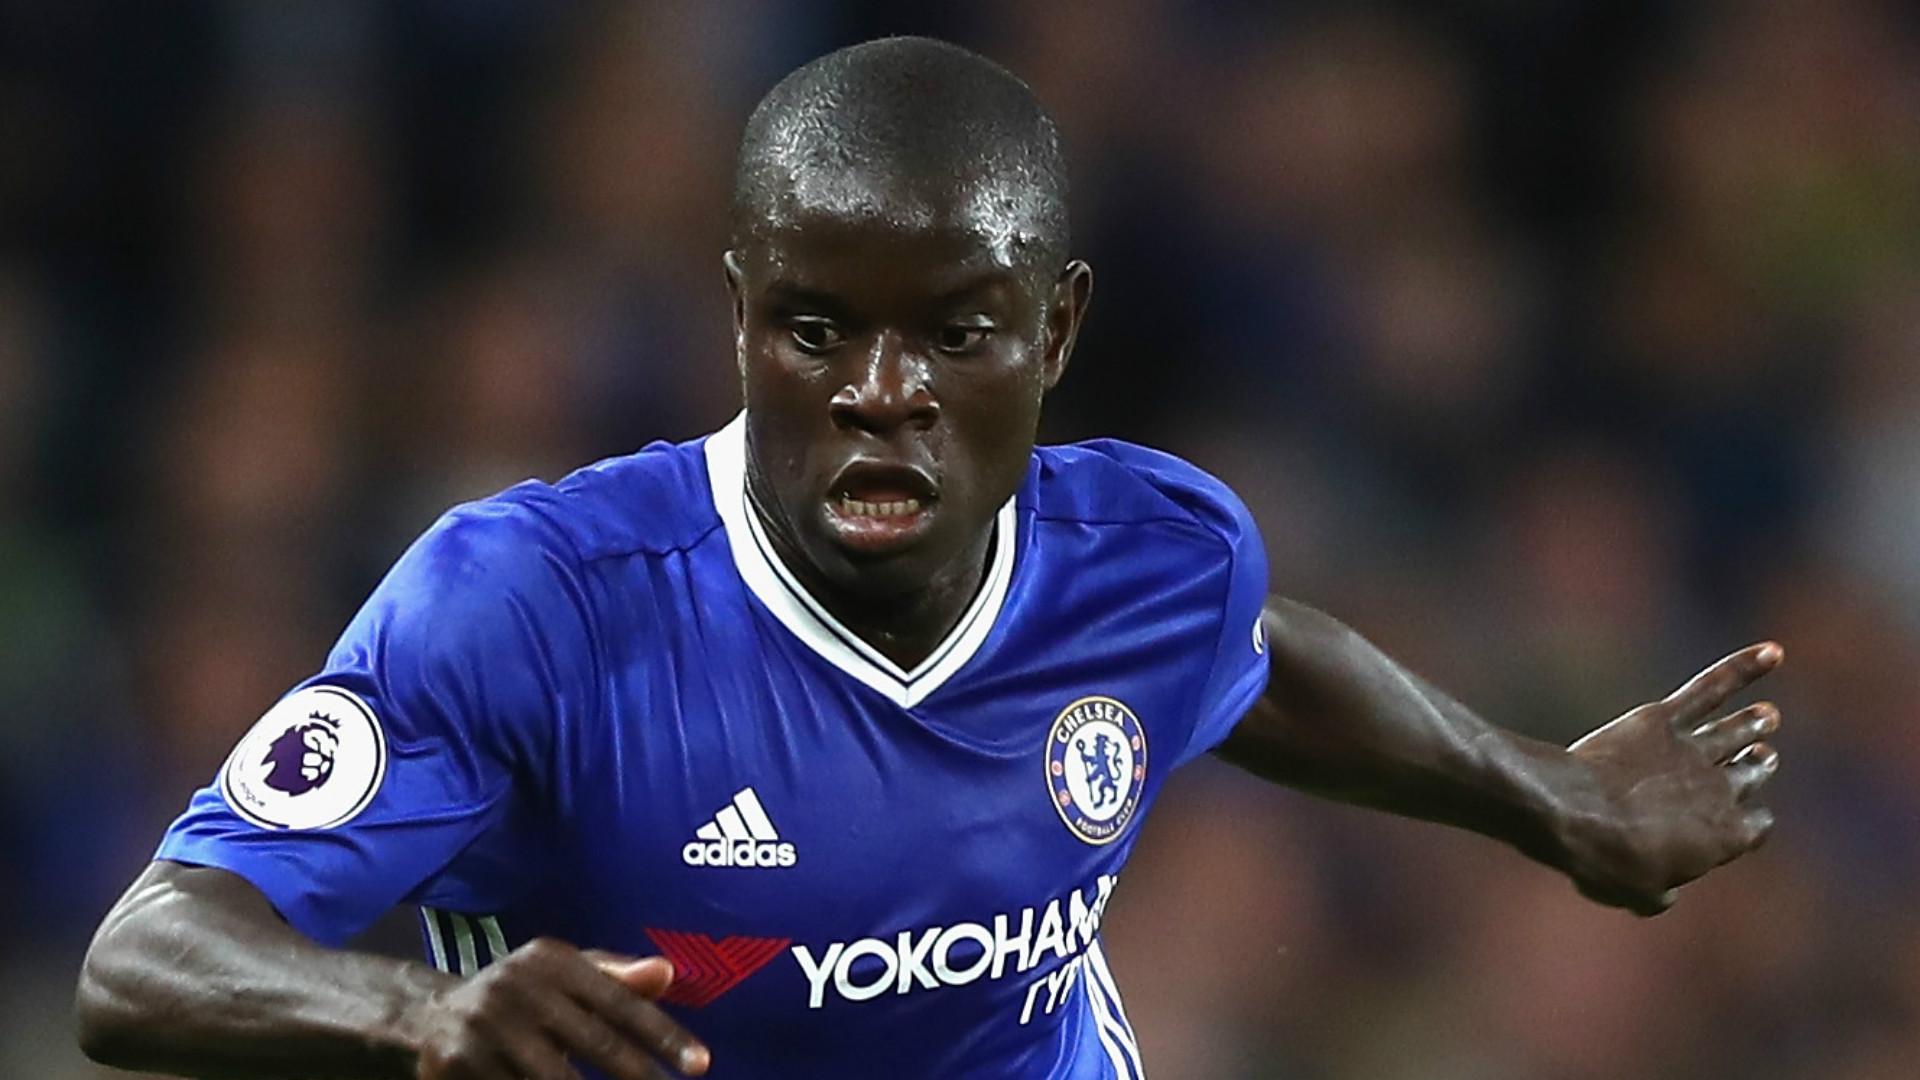 UEFA Team of the Year N'Golo Kante